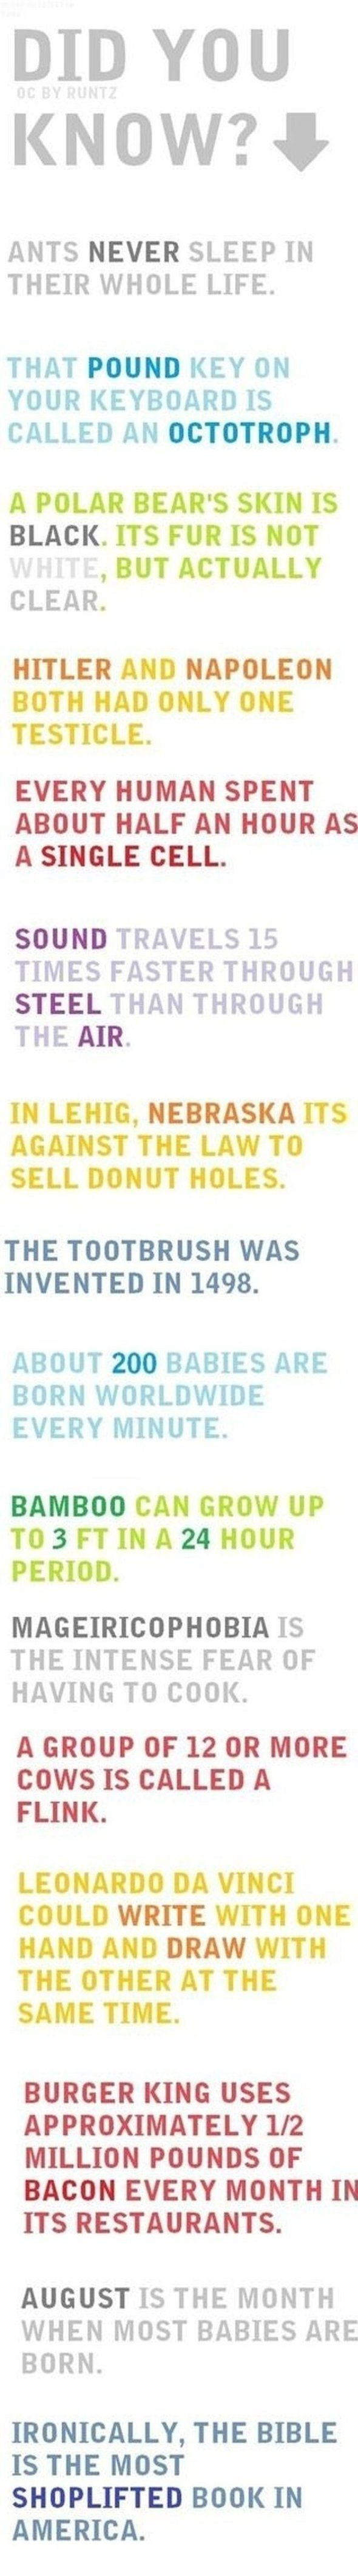 Did you know . . . AWESOME!  (And I knew about half of them...)